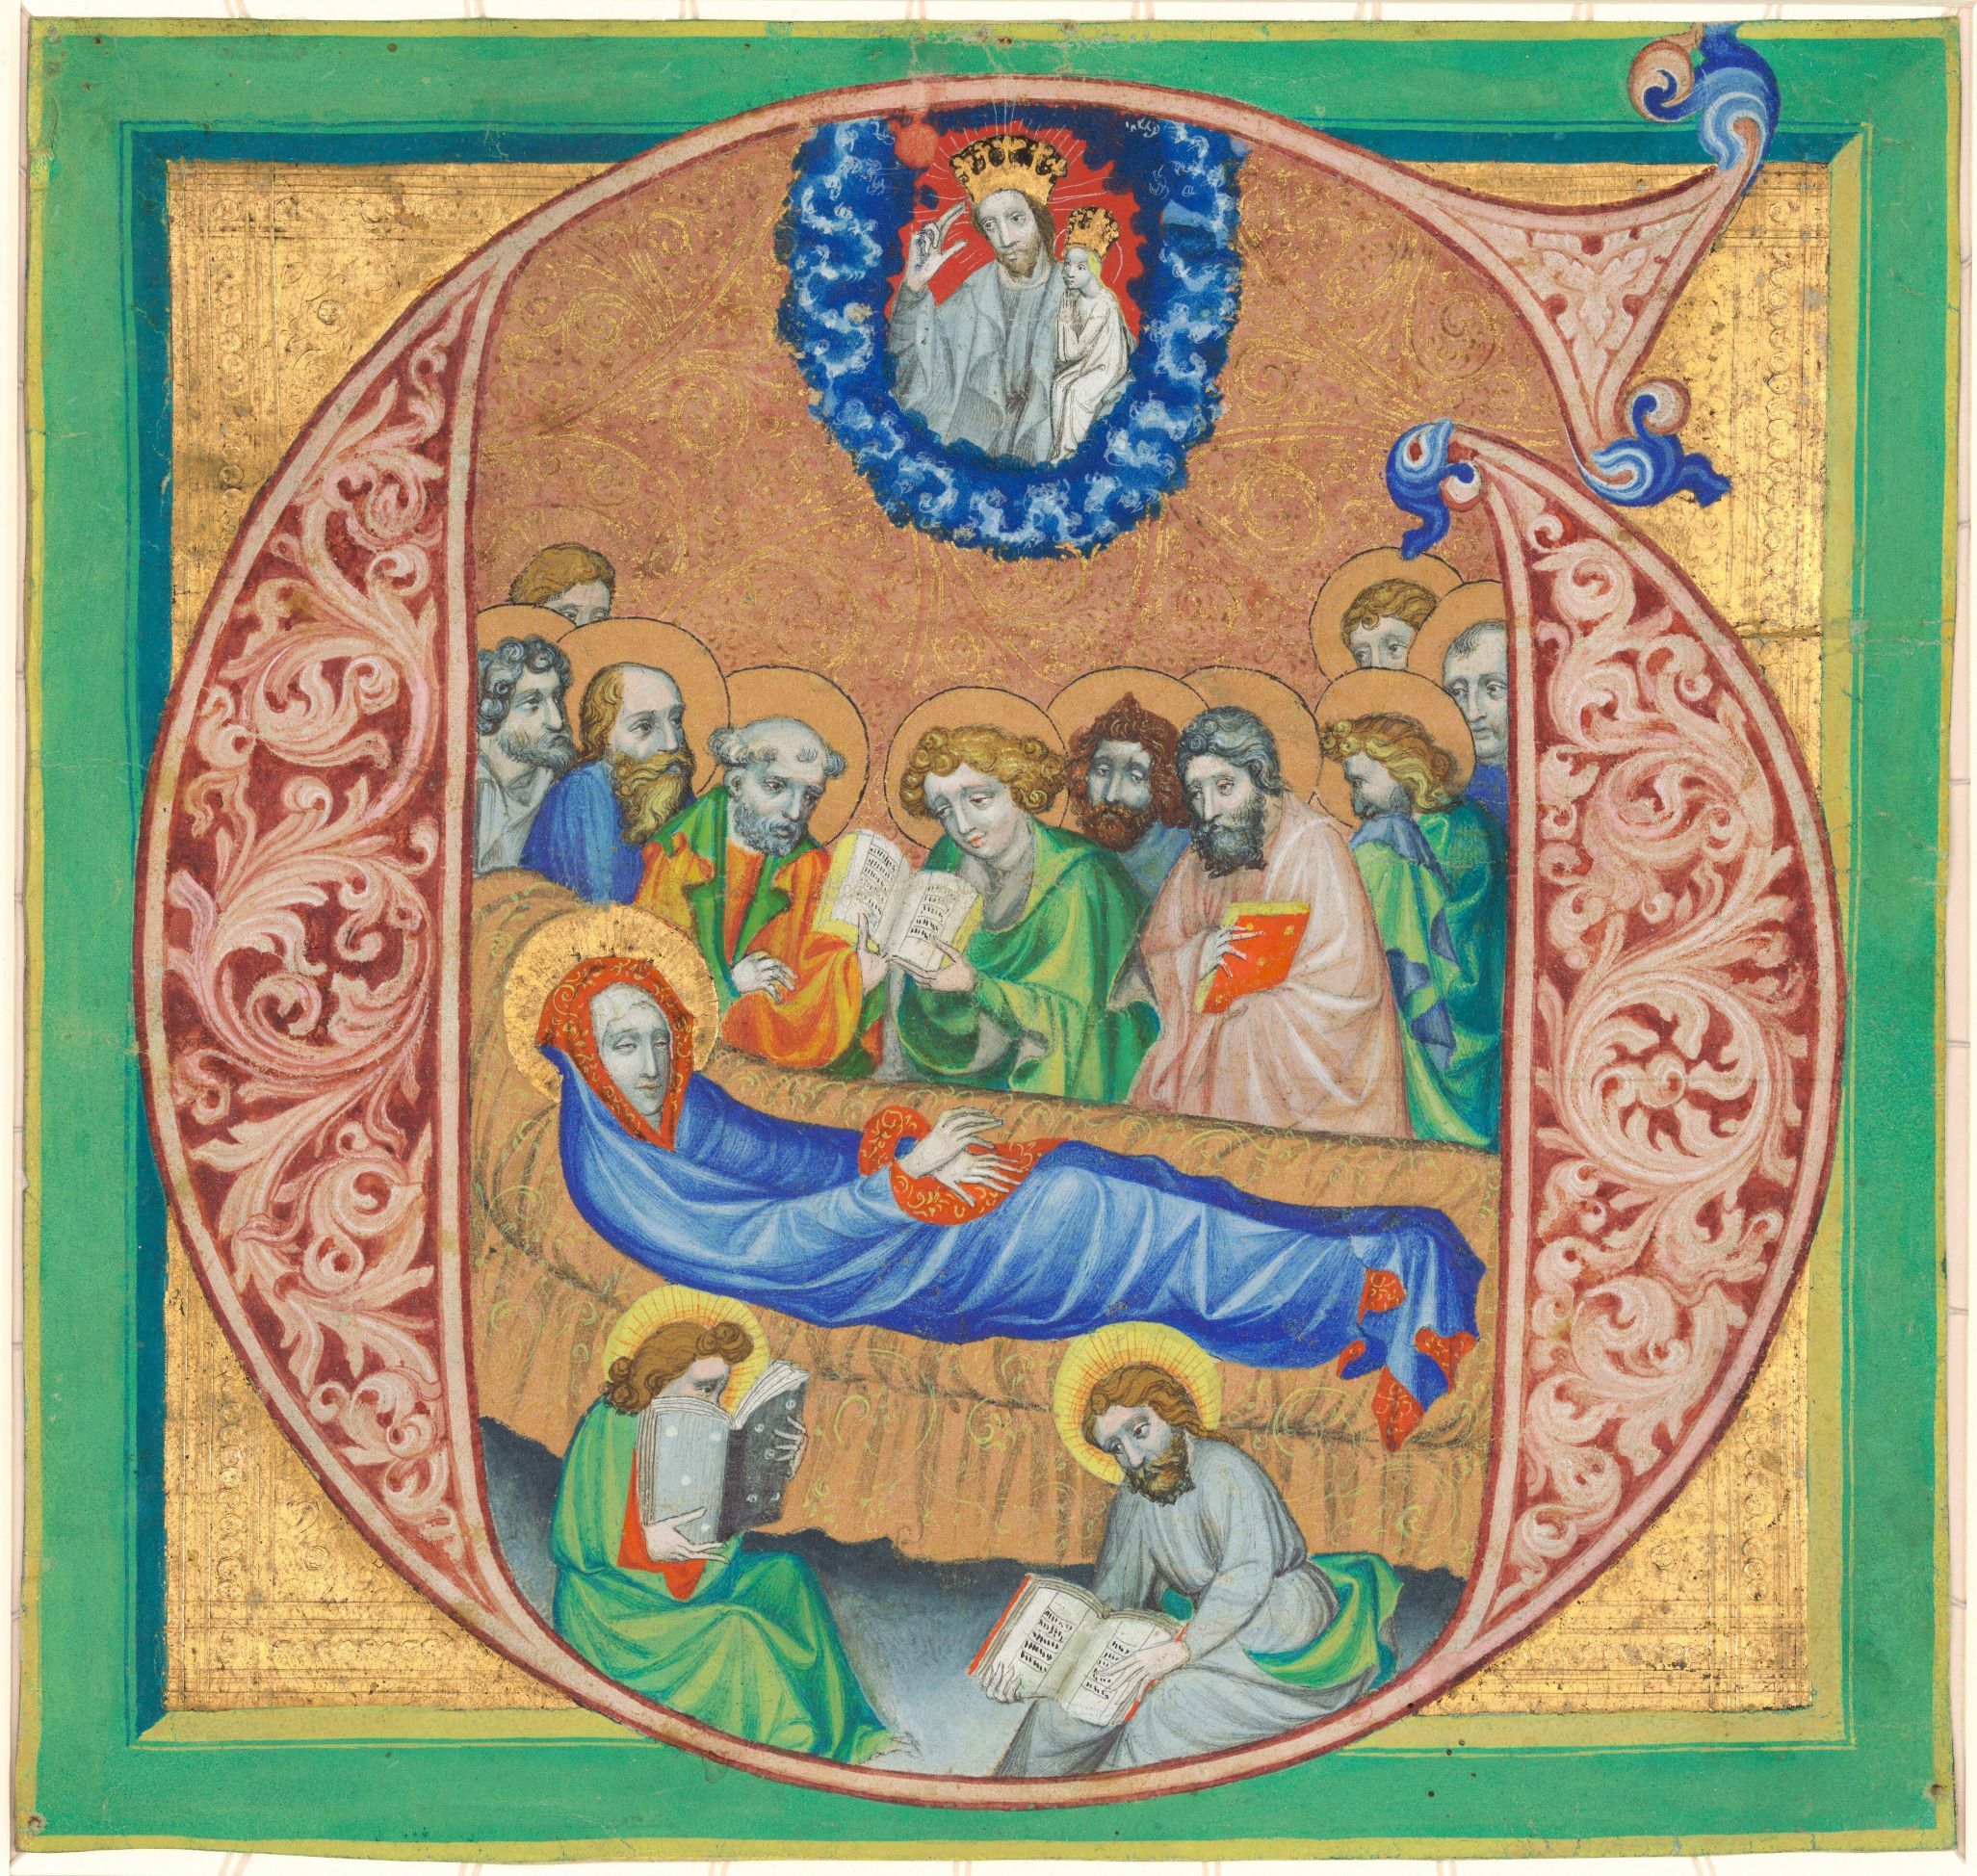 Death of the Virgin, c. 1410, Attributed to Joshua Master